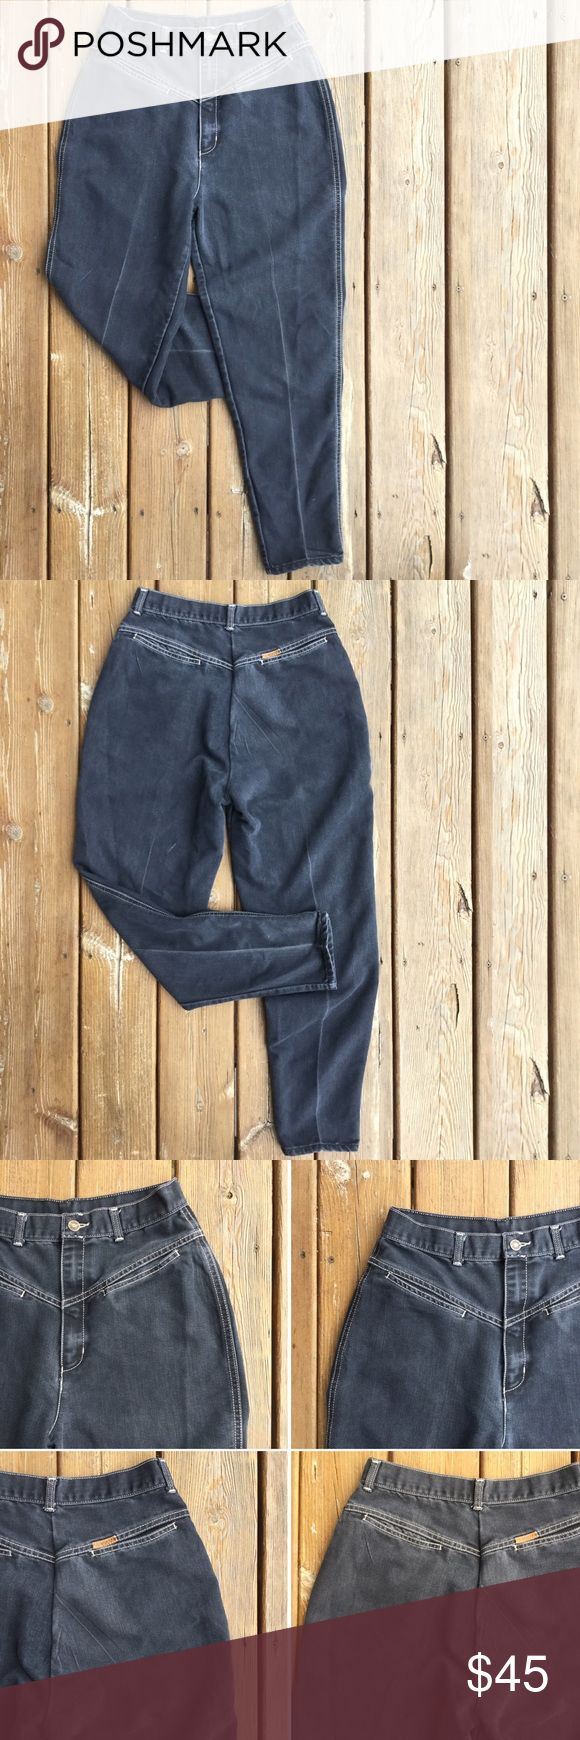 """GITANO '80's Ultra High-Waist Jeans Another great find! Authentic 80's Gitano ultra high-waisted jeans w/tapered legs. Faded black w/contrast stitching. Welt pockets back & front. Fading at seams, creases & wrinkles adds to the character and authenticity. Zip fly.  App. Meas. - Waist: 13.5"""" side to side; Hips: 21"""" side to side at bottom of fly level; Front Rise: 13.5""""; Back Rise: 16.25""""; Inseam: 28""""; Leg opening at hem: 6"""" from side to side Content: 41.5% Cot/28% Ray/30.5% Poly; Sz: 14…"""